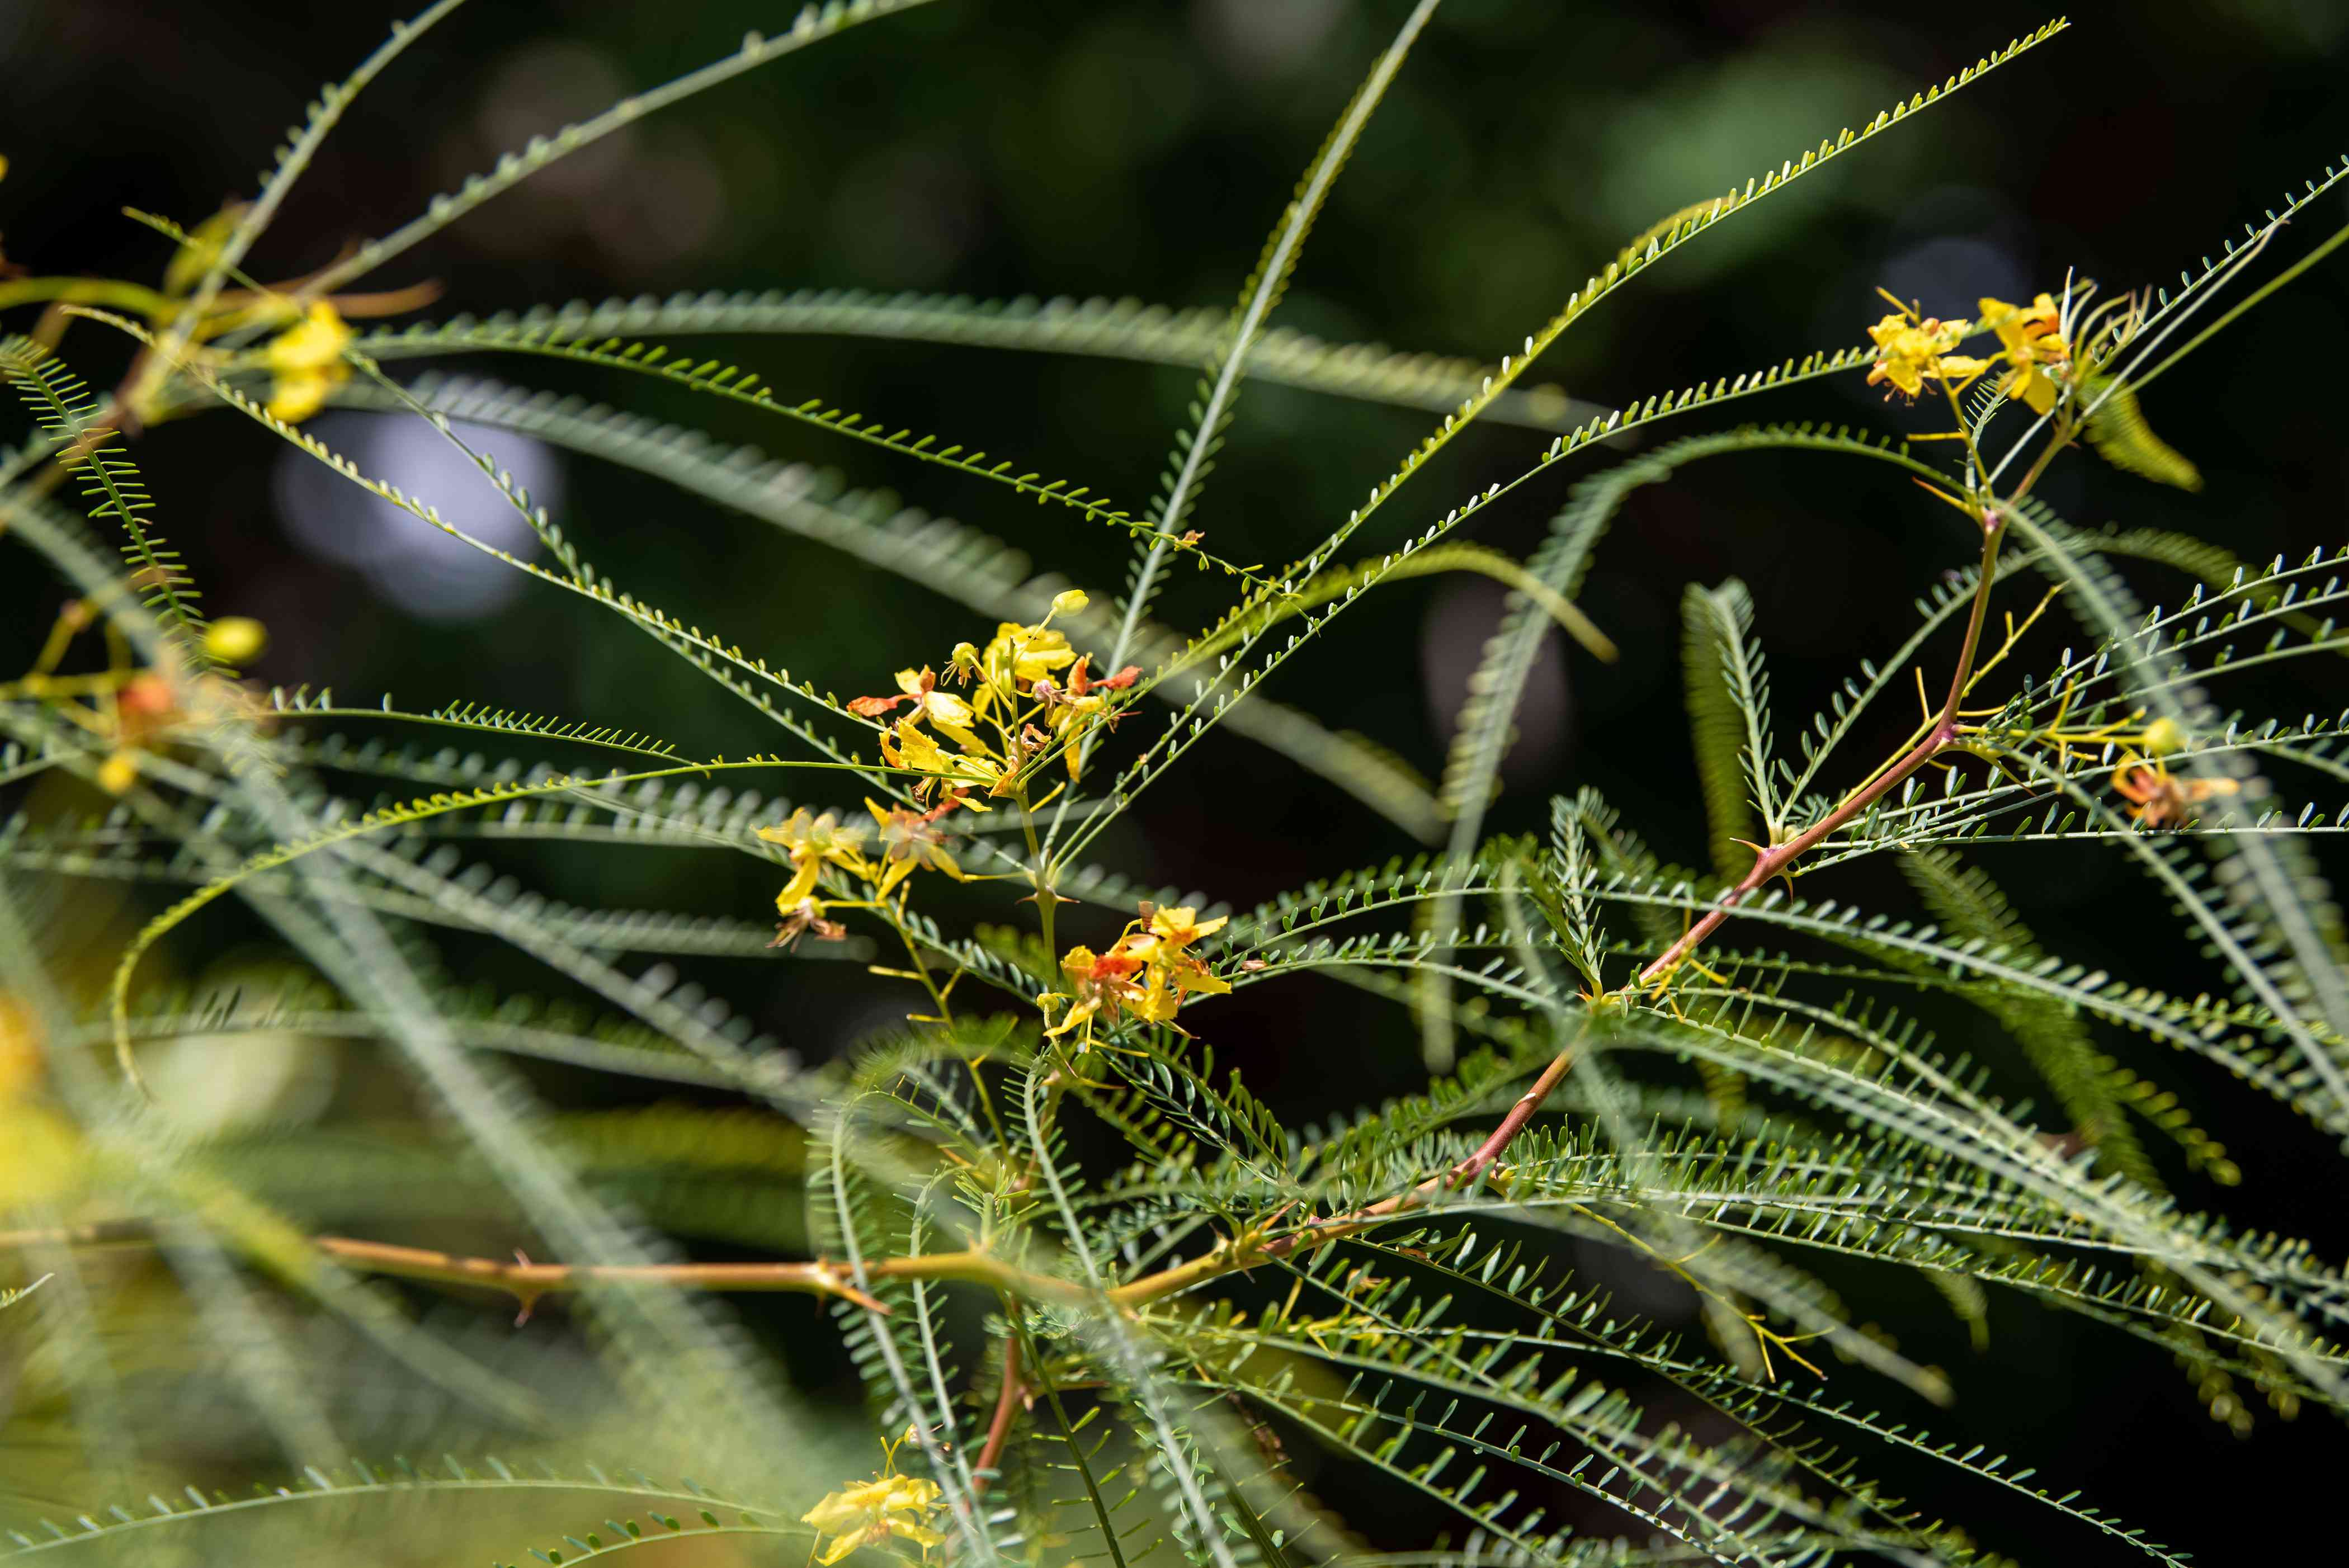 Palo verde tree with thin feather-like branches and small yellow flowers closeup